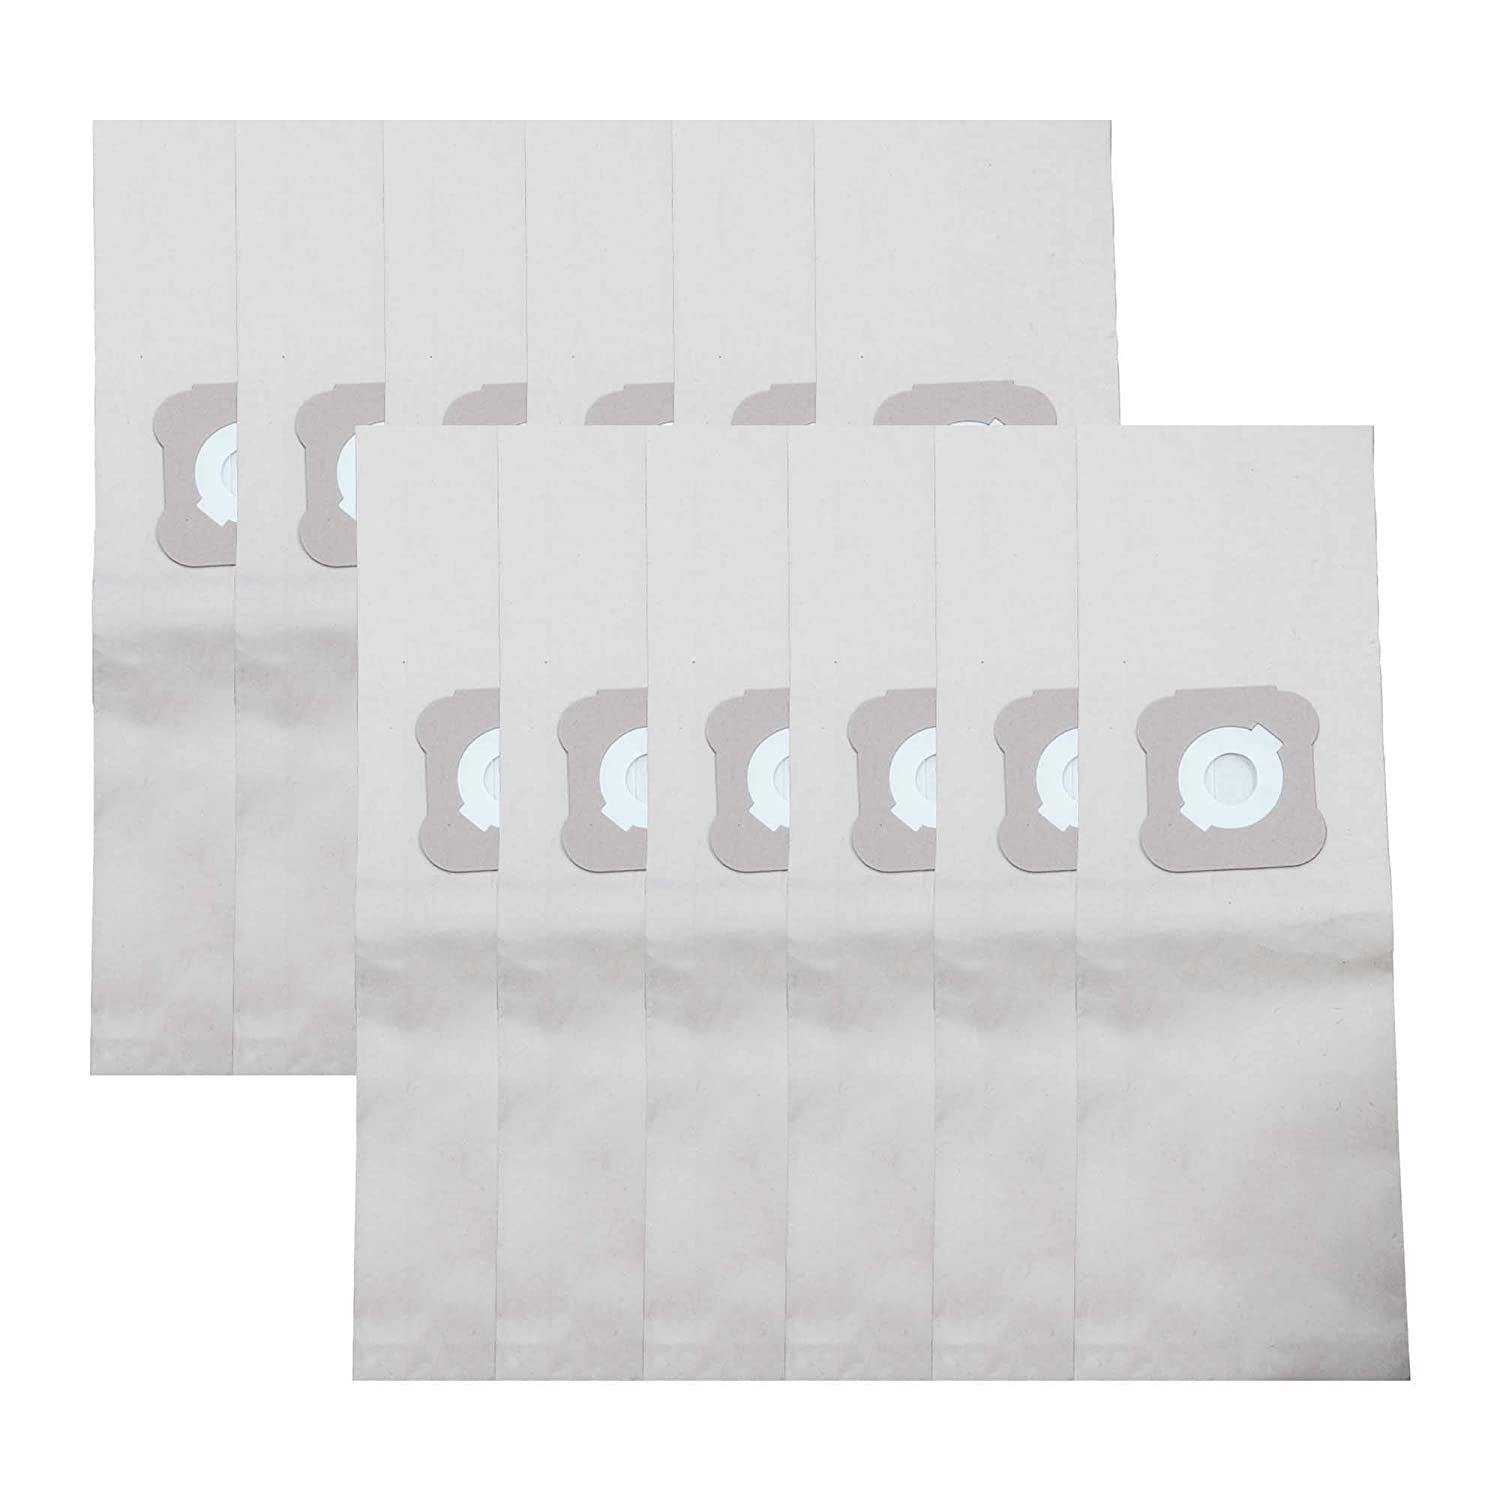 12 Replacements for Kirby Paper Generation Bags Fit G3, G4, G5, G6, Ultimate G, Sentria & Diamond Edition, Compatible With Part # 204803 & 205803, by Think Crucial Crucial Vacuum